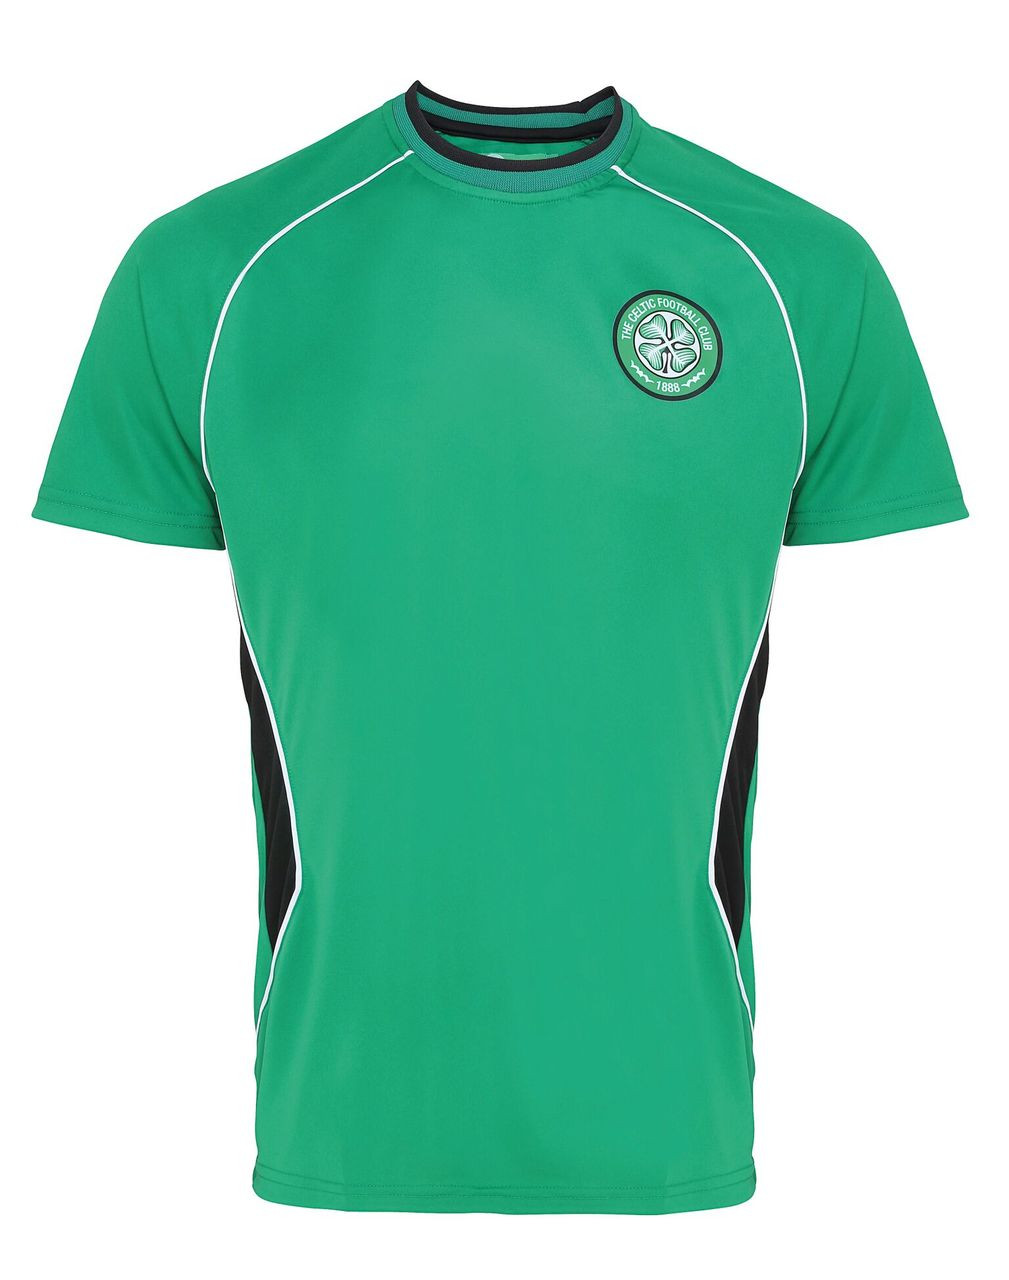 ee4fa060009 Celtic FC Adults T-Shirt - Speed One Sports